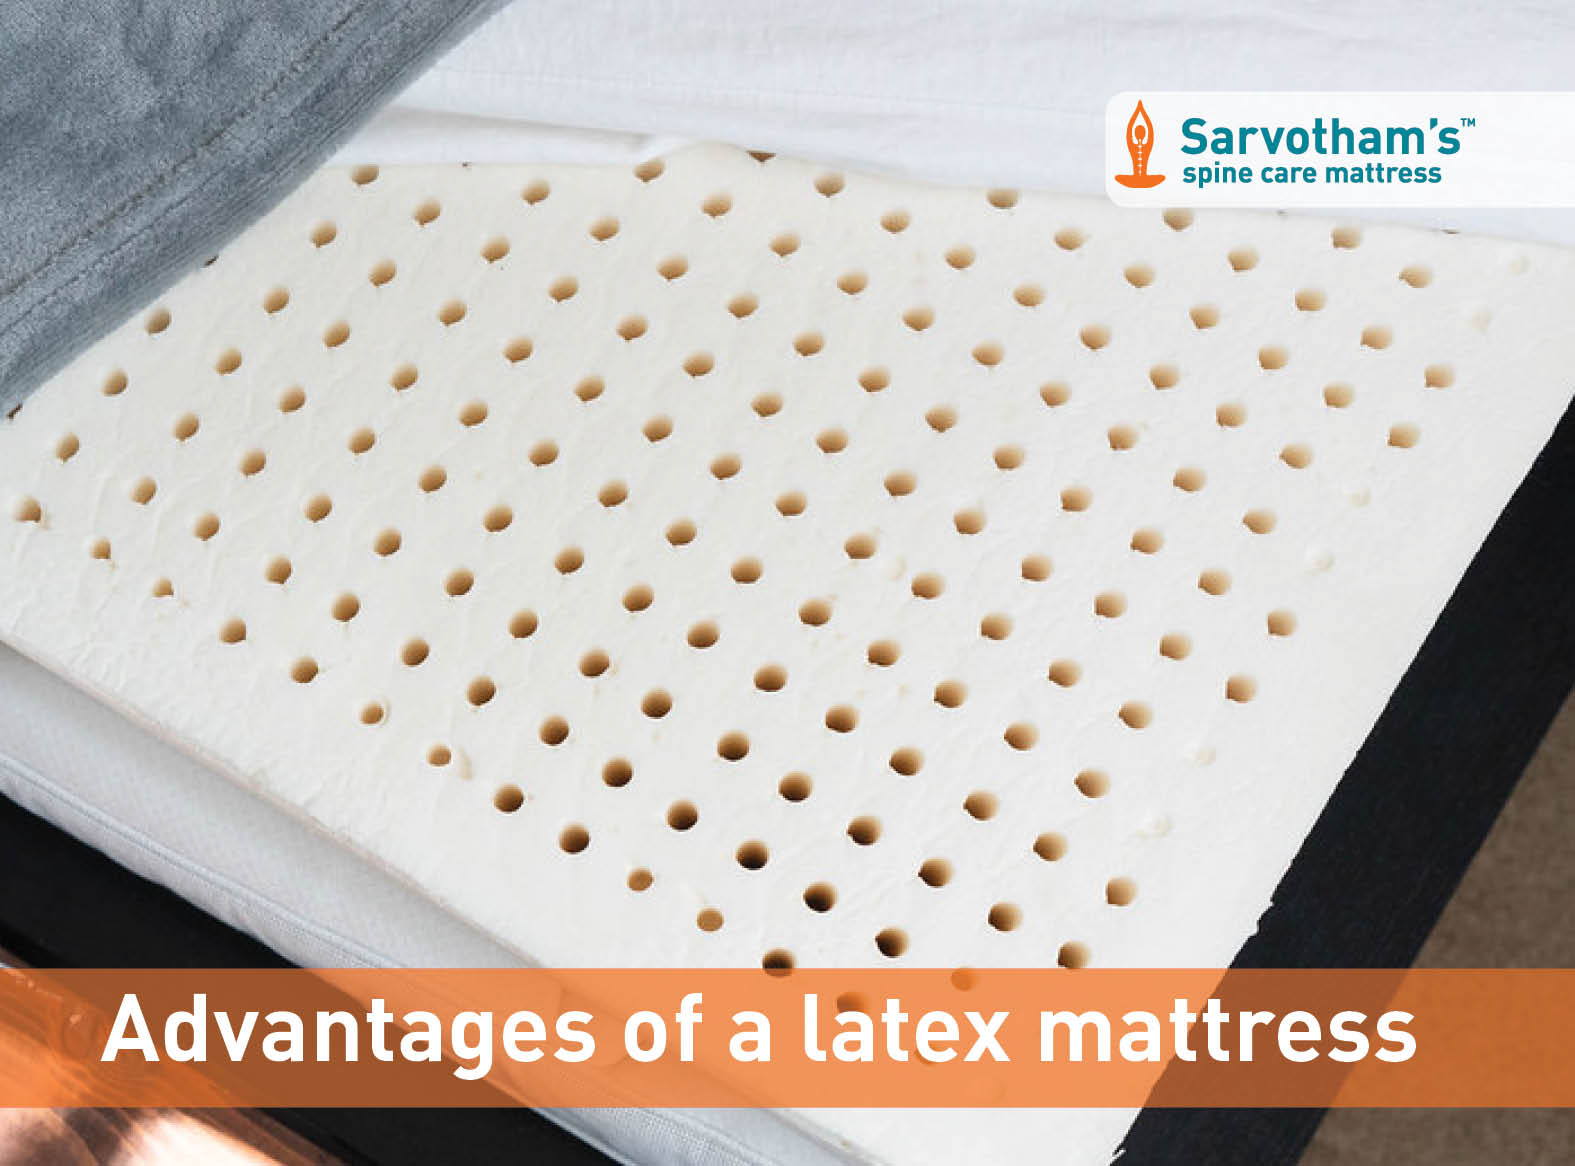 7 Advantages of a Latex Mattress